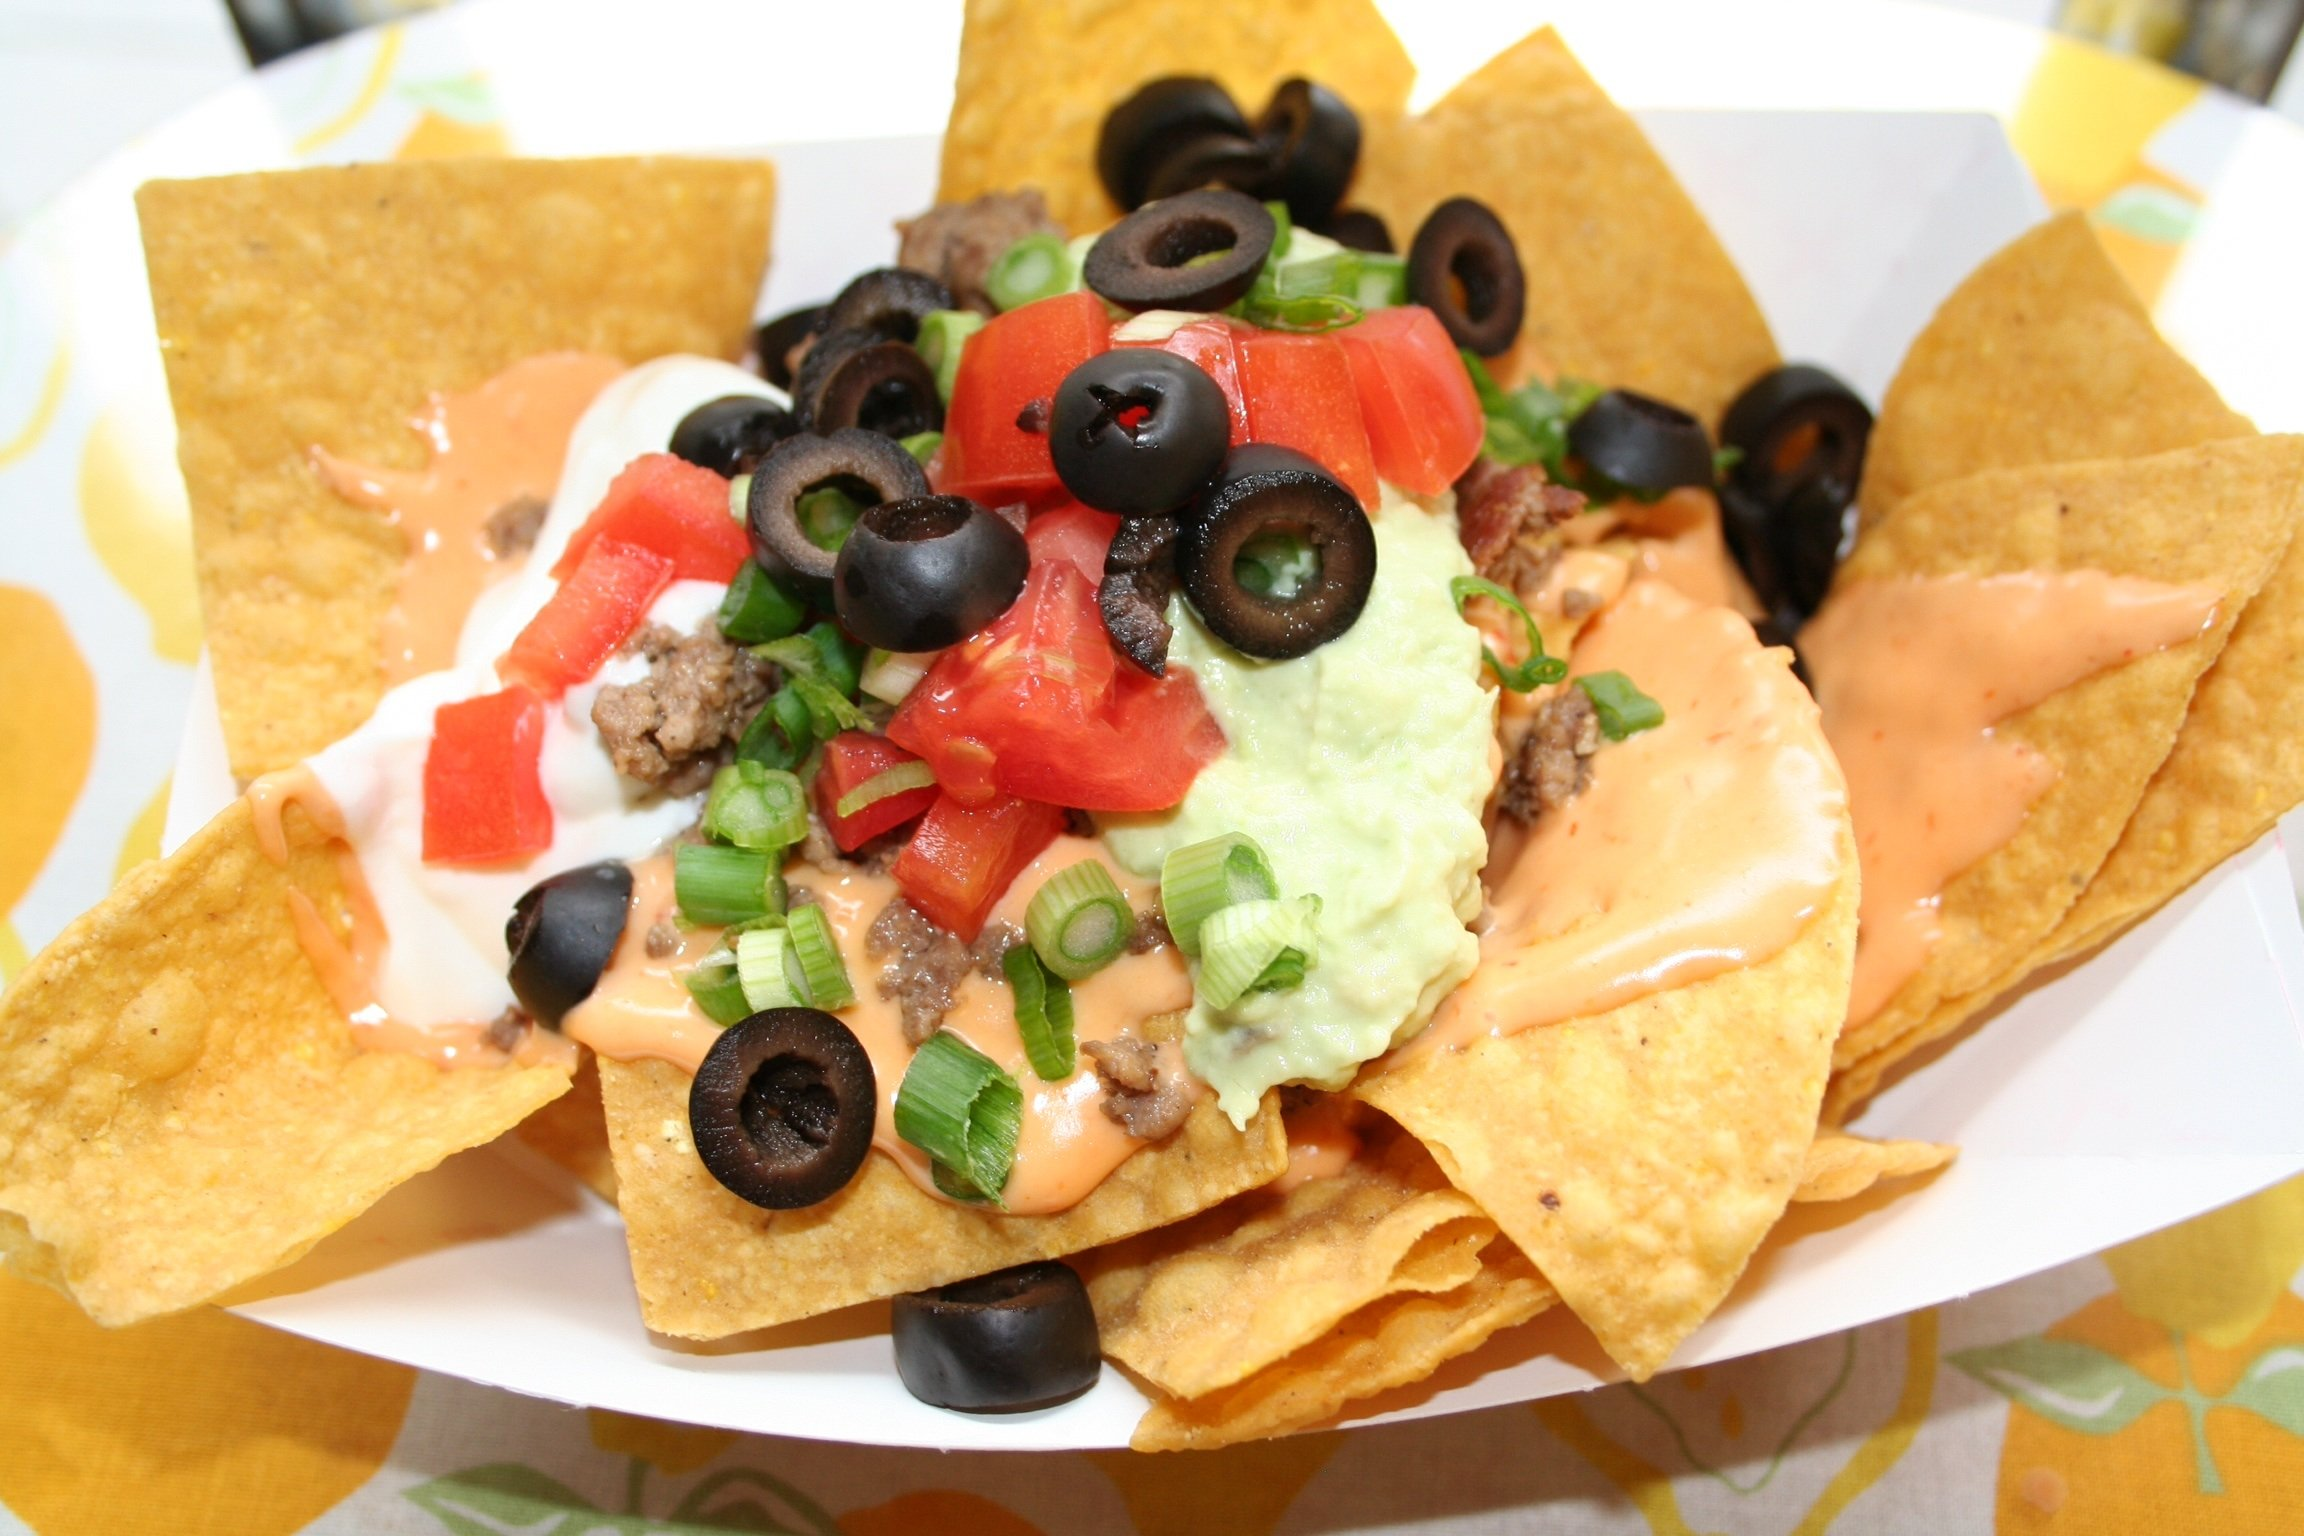 Nachos with toppings in a paper bowl